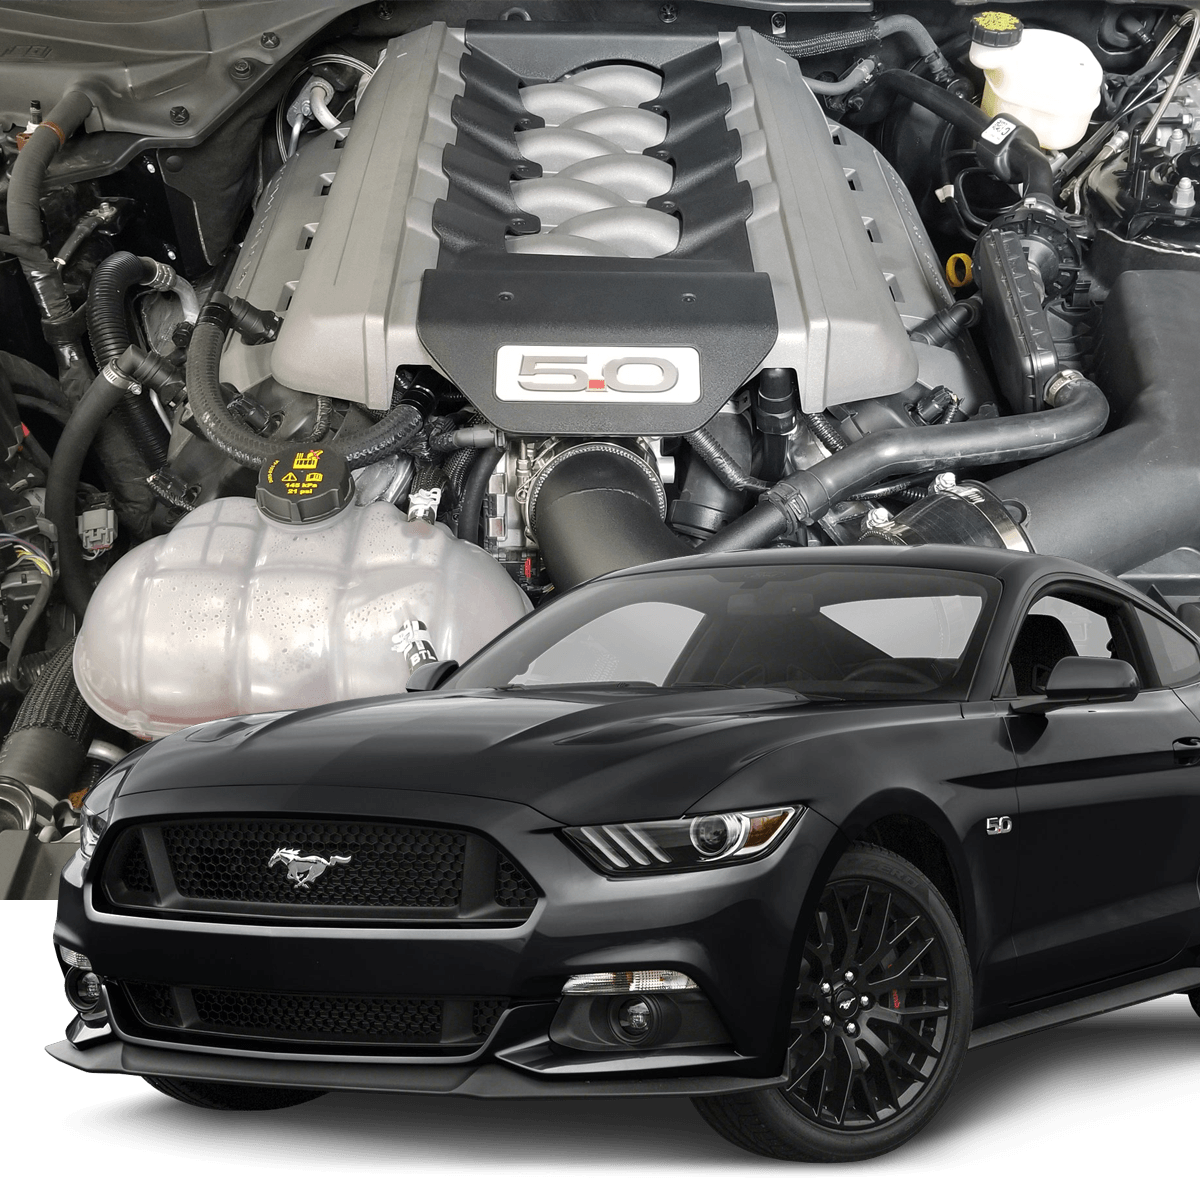 2015 Mustang Gt Pictures Hellion 2015 2017 Ford Mustang Gt Street Sleeper Hidden Twin Turbo System